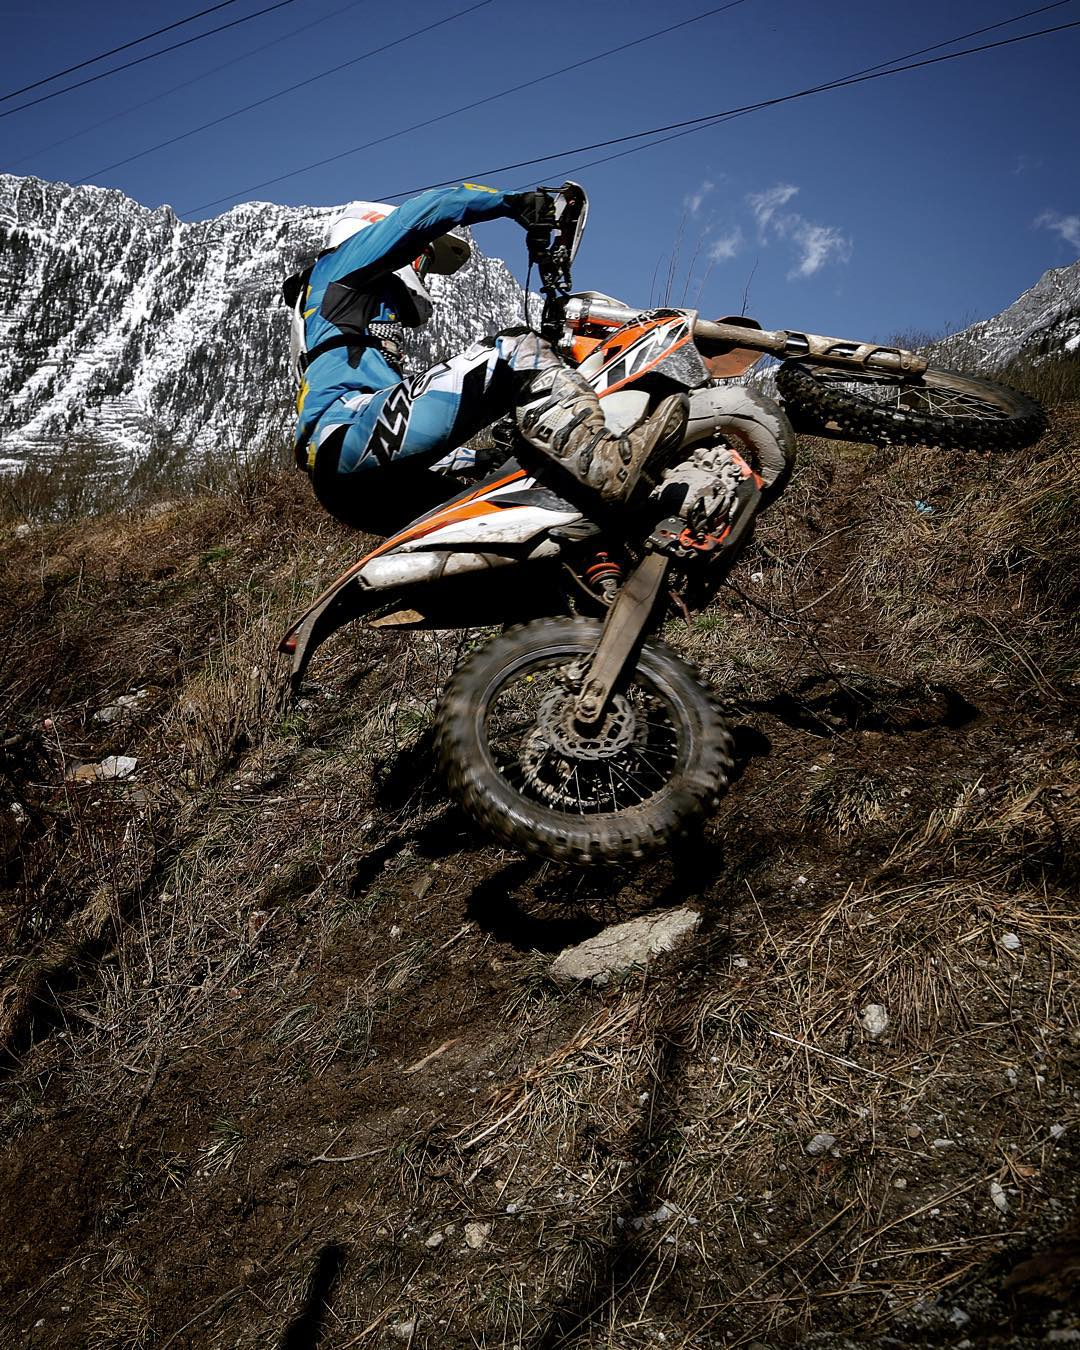 @zajcmaster on his way up a tricky climb @xbowlarena #KTM #enduro #250exc #alpinestars #ride100percent